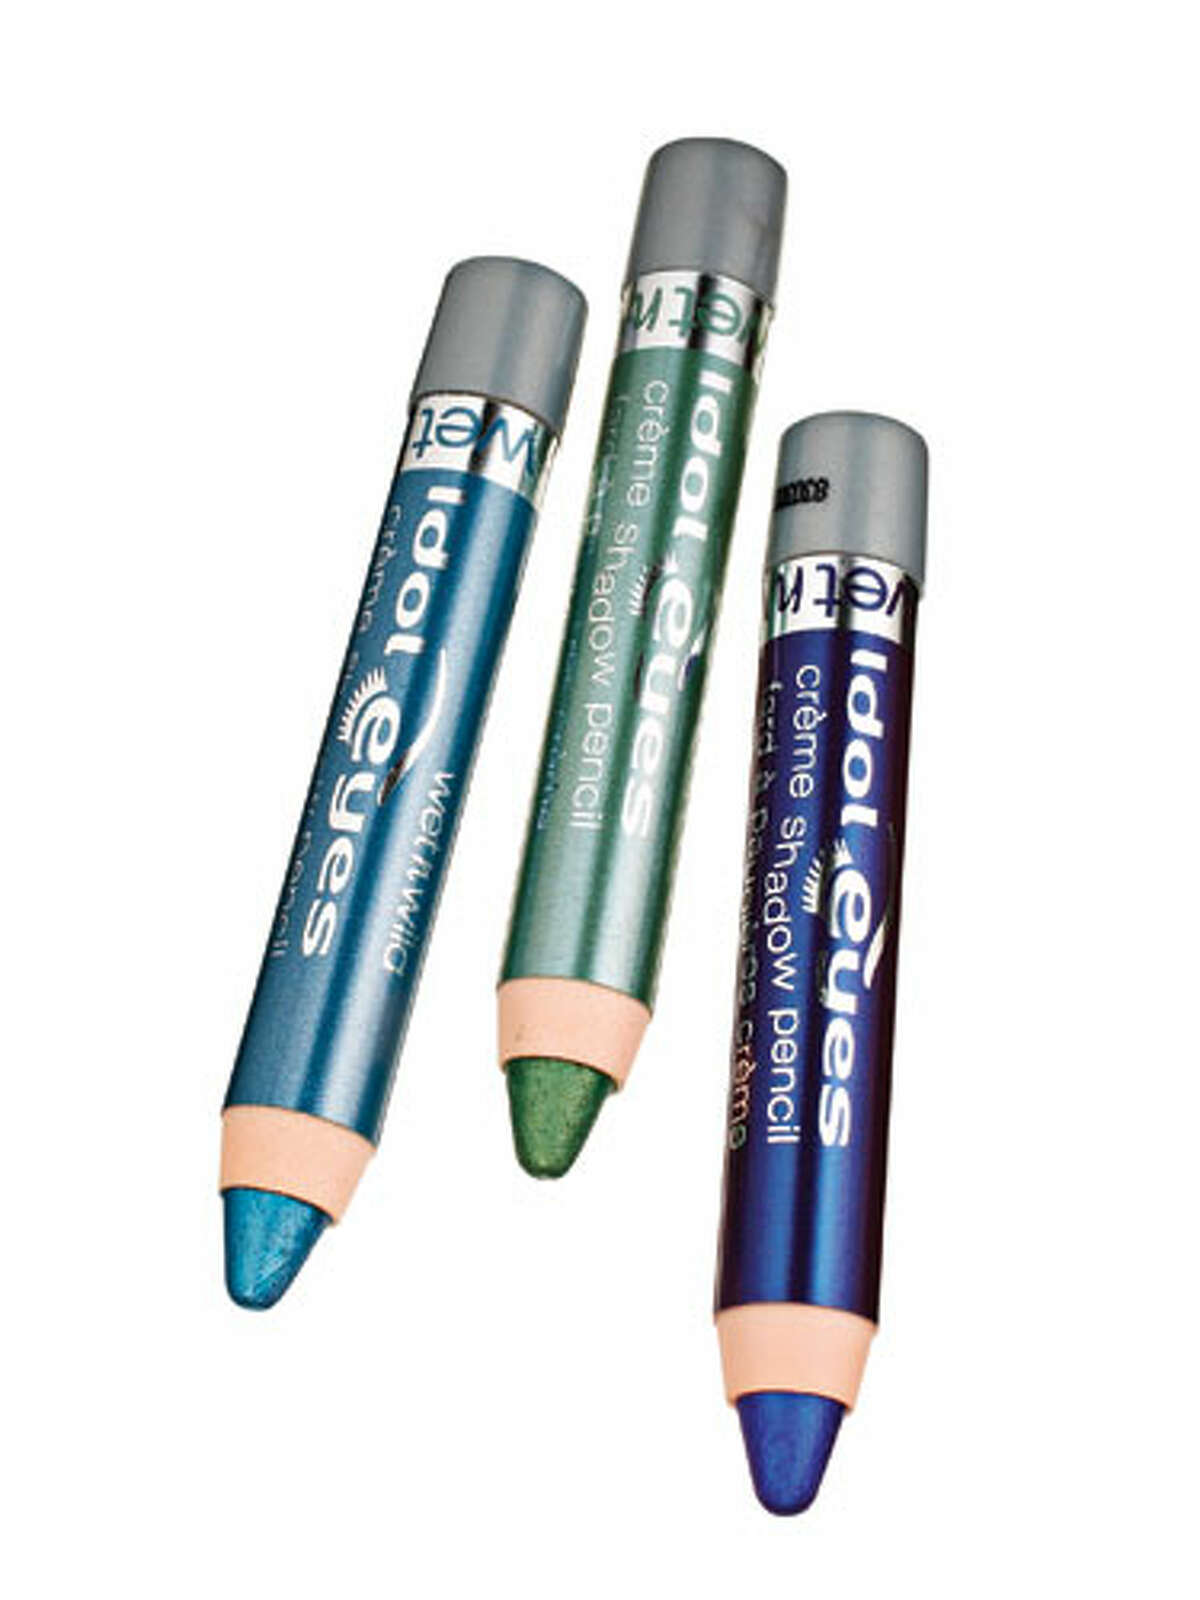 First, reach for liner. Skip black - like an LBD, it narrows your shape - and use a colored one to define your top lash line, says celebrity makeup artist Carmindy. (Blues and greens not your thing? Reach for slate, which looks awesome on everyone.) Now, swipe a shimmery white shadow onto your inner corners in a sideways V shape to catch light, which widens eyes. Finally, make your eyelash curler your BFF. Crimping the top lash line angles hairs so tips are closer to your brows, expanding the entire eye area. Immediately lock in the curve with two coats of lengthening mascara. Wet n Wild Idol Eyes, $2 each Reprinted with Permission of Hearst Communications, Inc. Originally Published: Fix-Anything Makeup Tricks Jeffrey Westbrook/Studio D Jeffrey Westbrook/Studio D